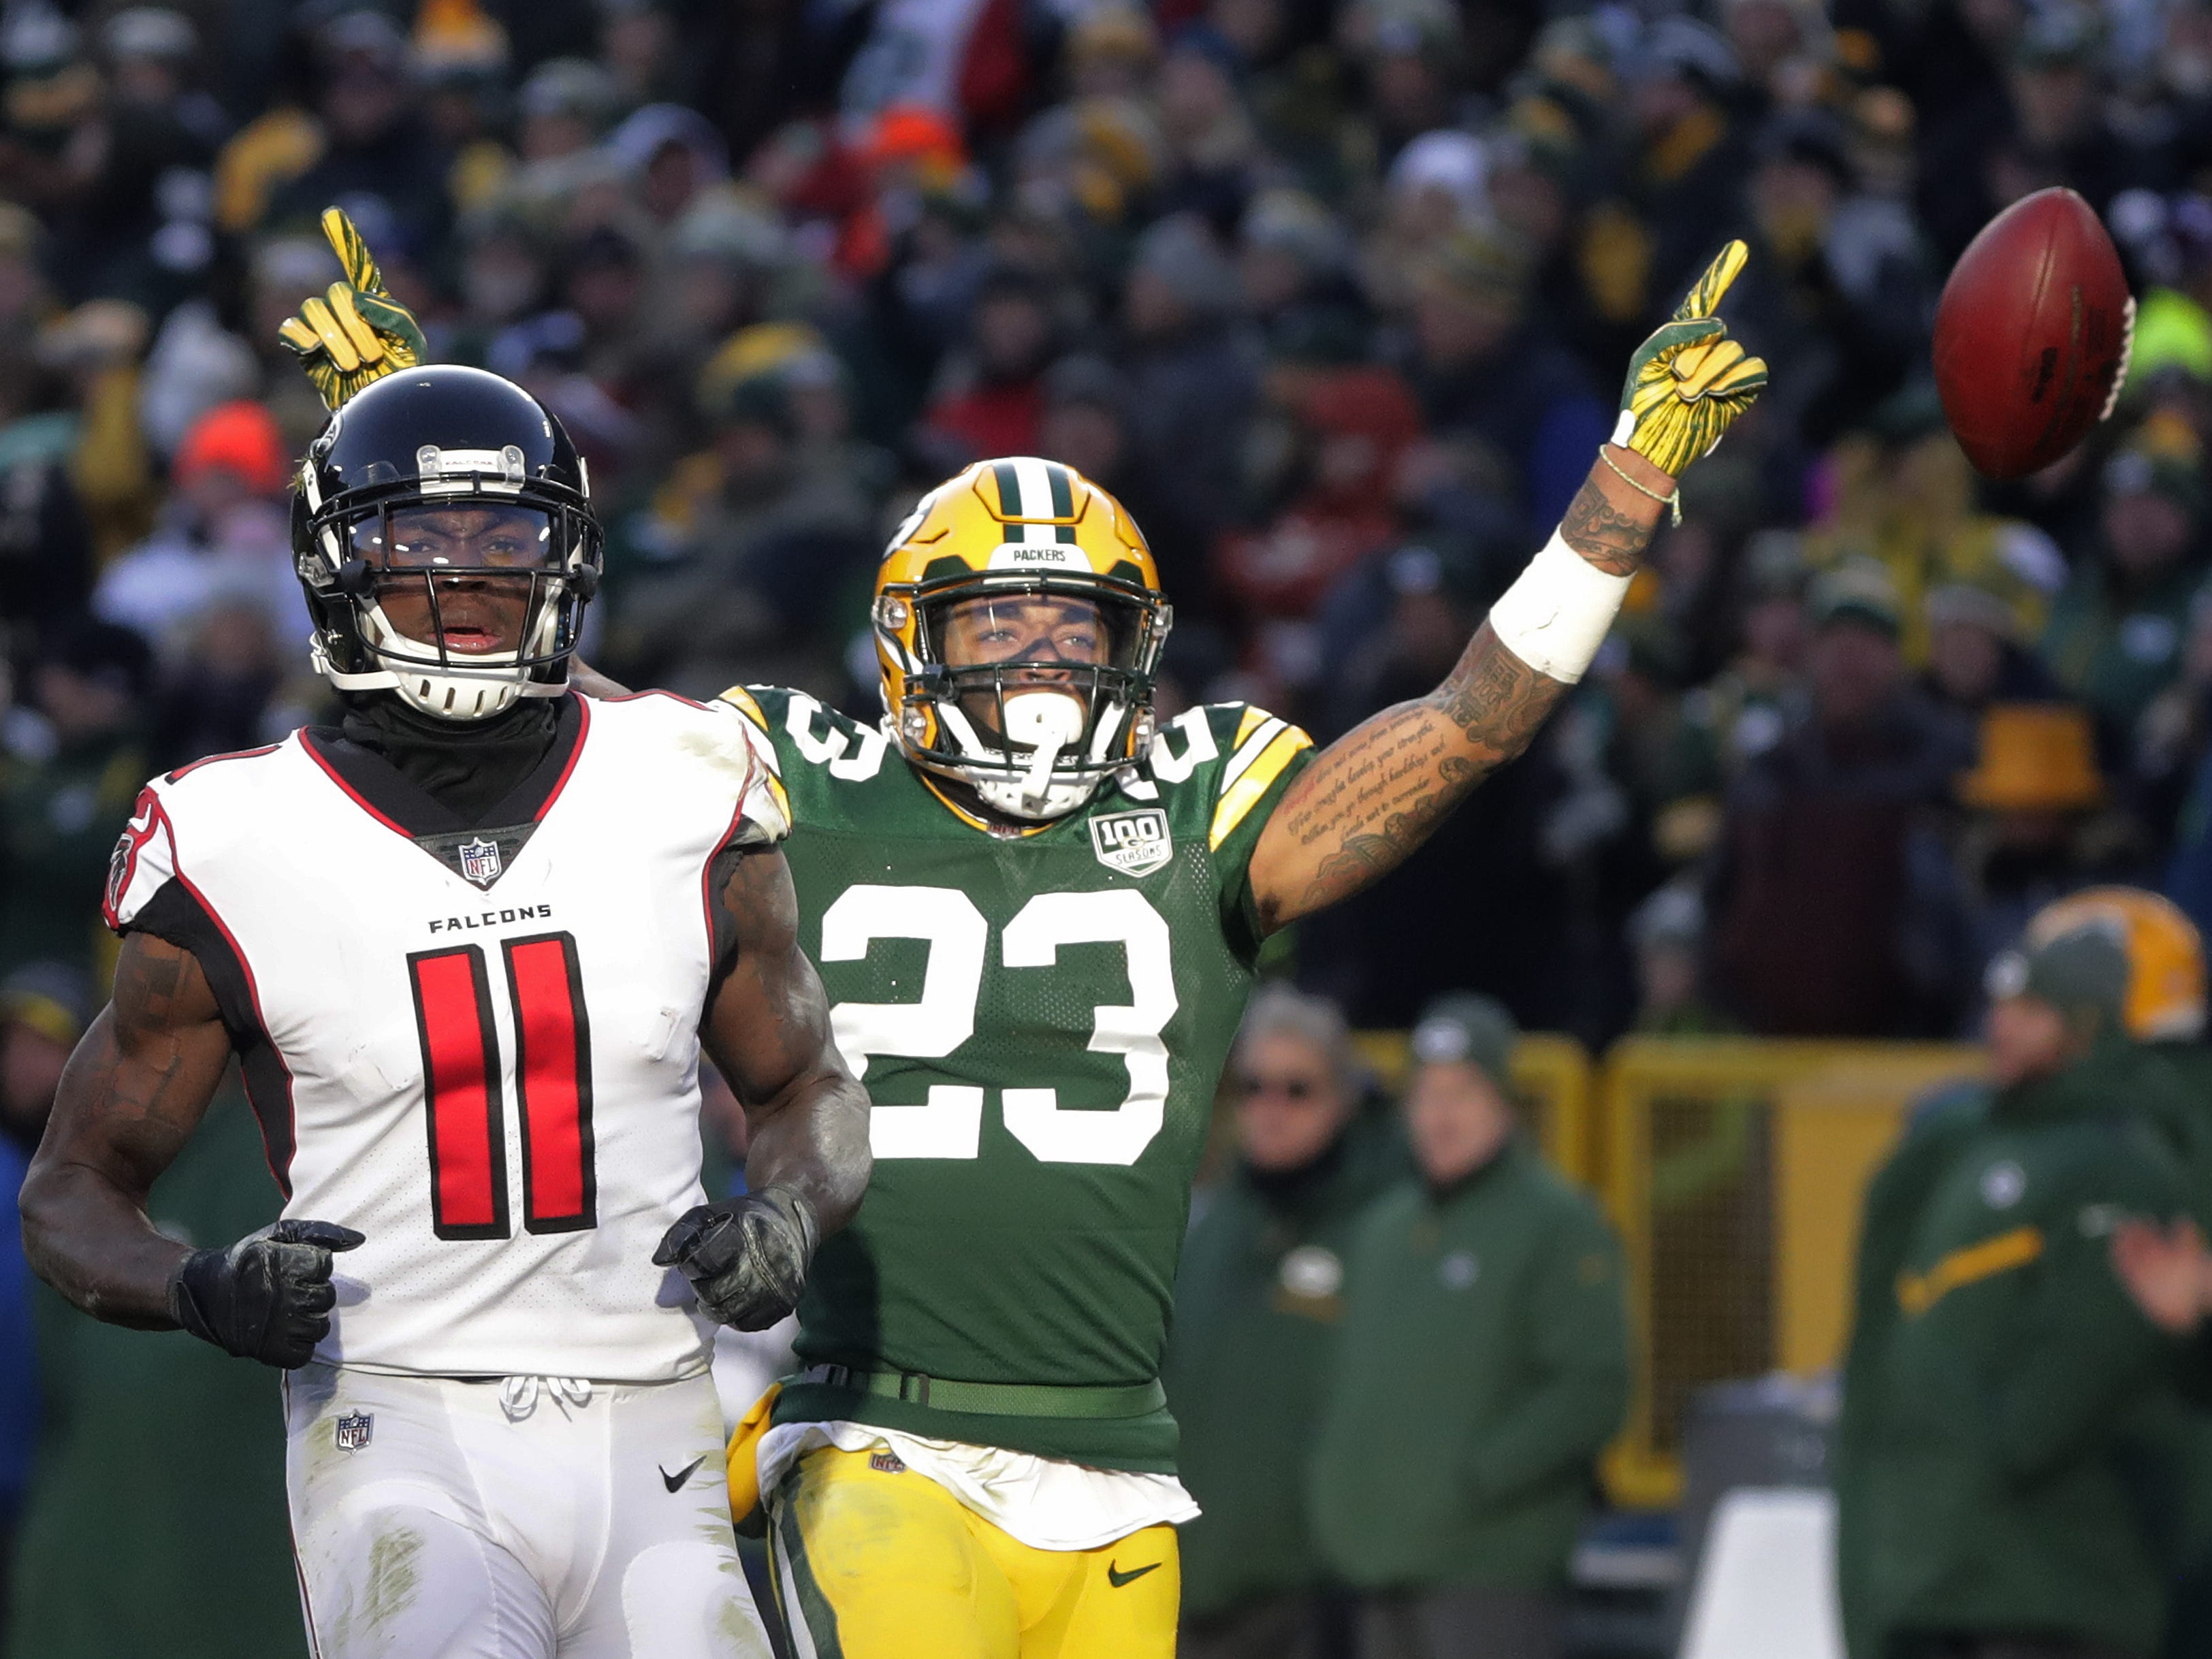 Green Bay Packers cornerback Jaire Alexander (23) celebrates after an incomplete pass to Atlanta Falcons wide receiver Julio Jones (11) in the third quarter at Lambeau Field on Sunday, December 9, 2018 in Green Bay, Wis. Adam Wesley/USA TODAY NETWORK-Wis